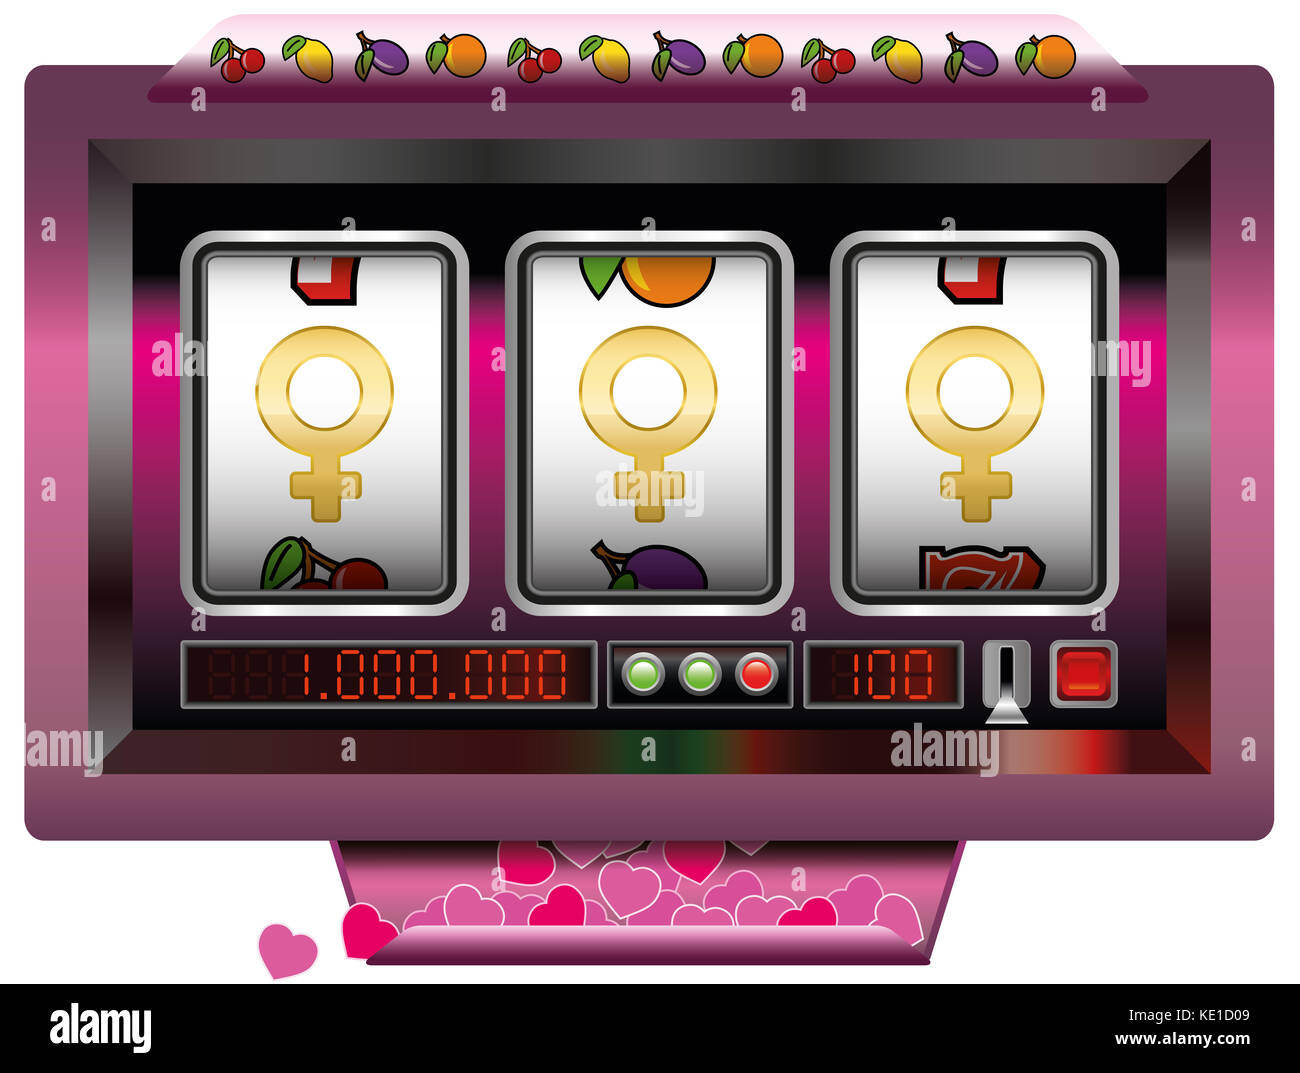 Dream girl win with slot machine - symbol for having good fortune to find the dream women - slot machine jackpot - Stock Image